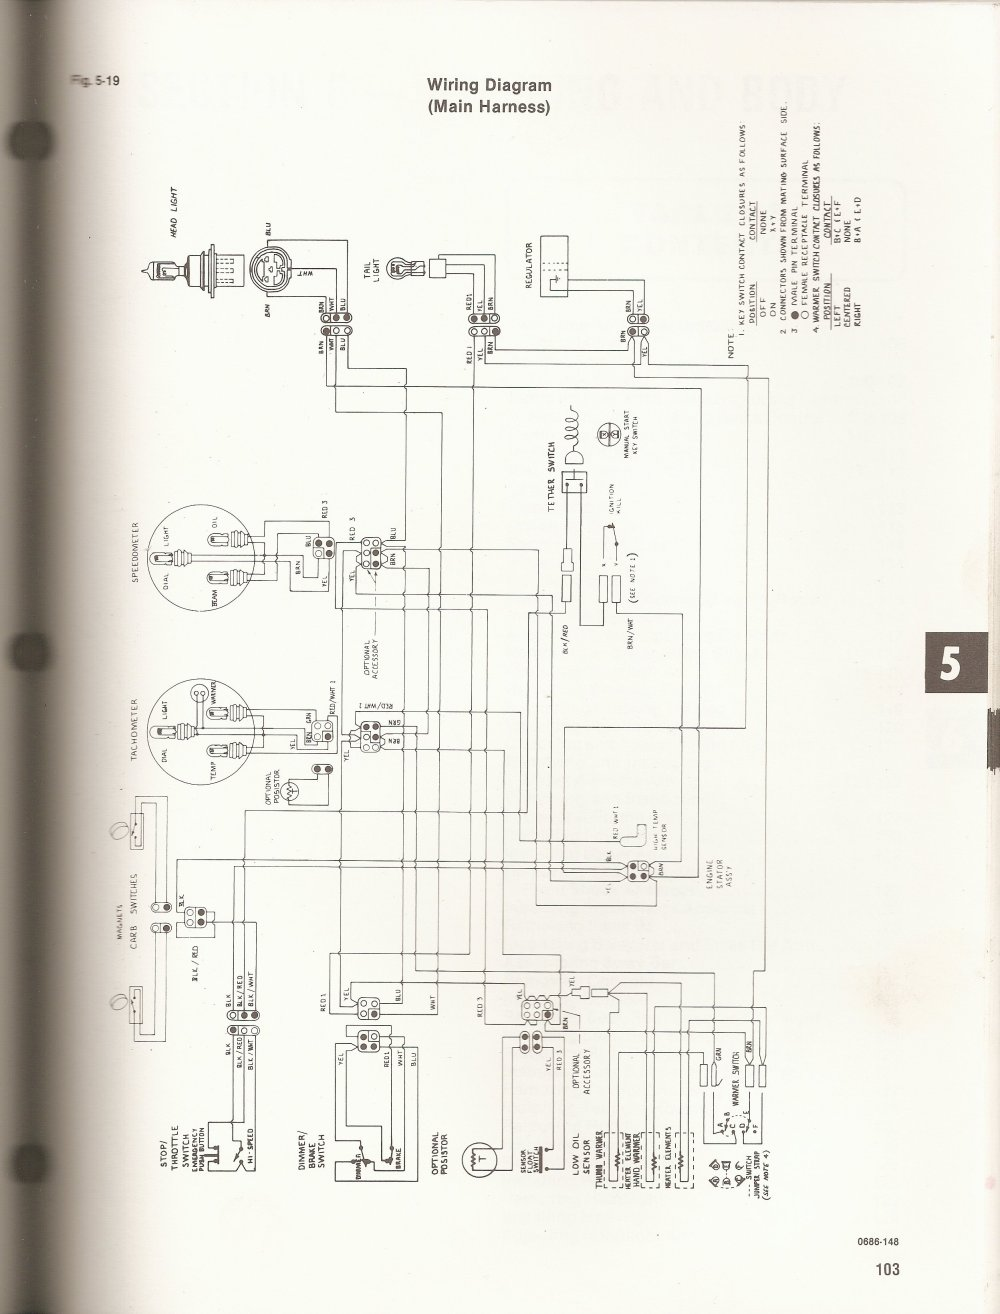 medium resolution of 92 700 wildcat wiring diagram wiring diagram for professional u2022 rh bestbreweries co 1992 arctic cat wildcat 700 manual 1991 arctic cat wildcat 700